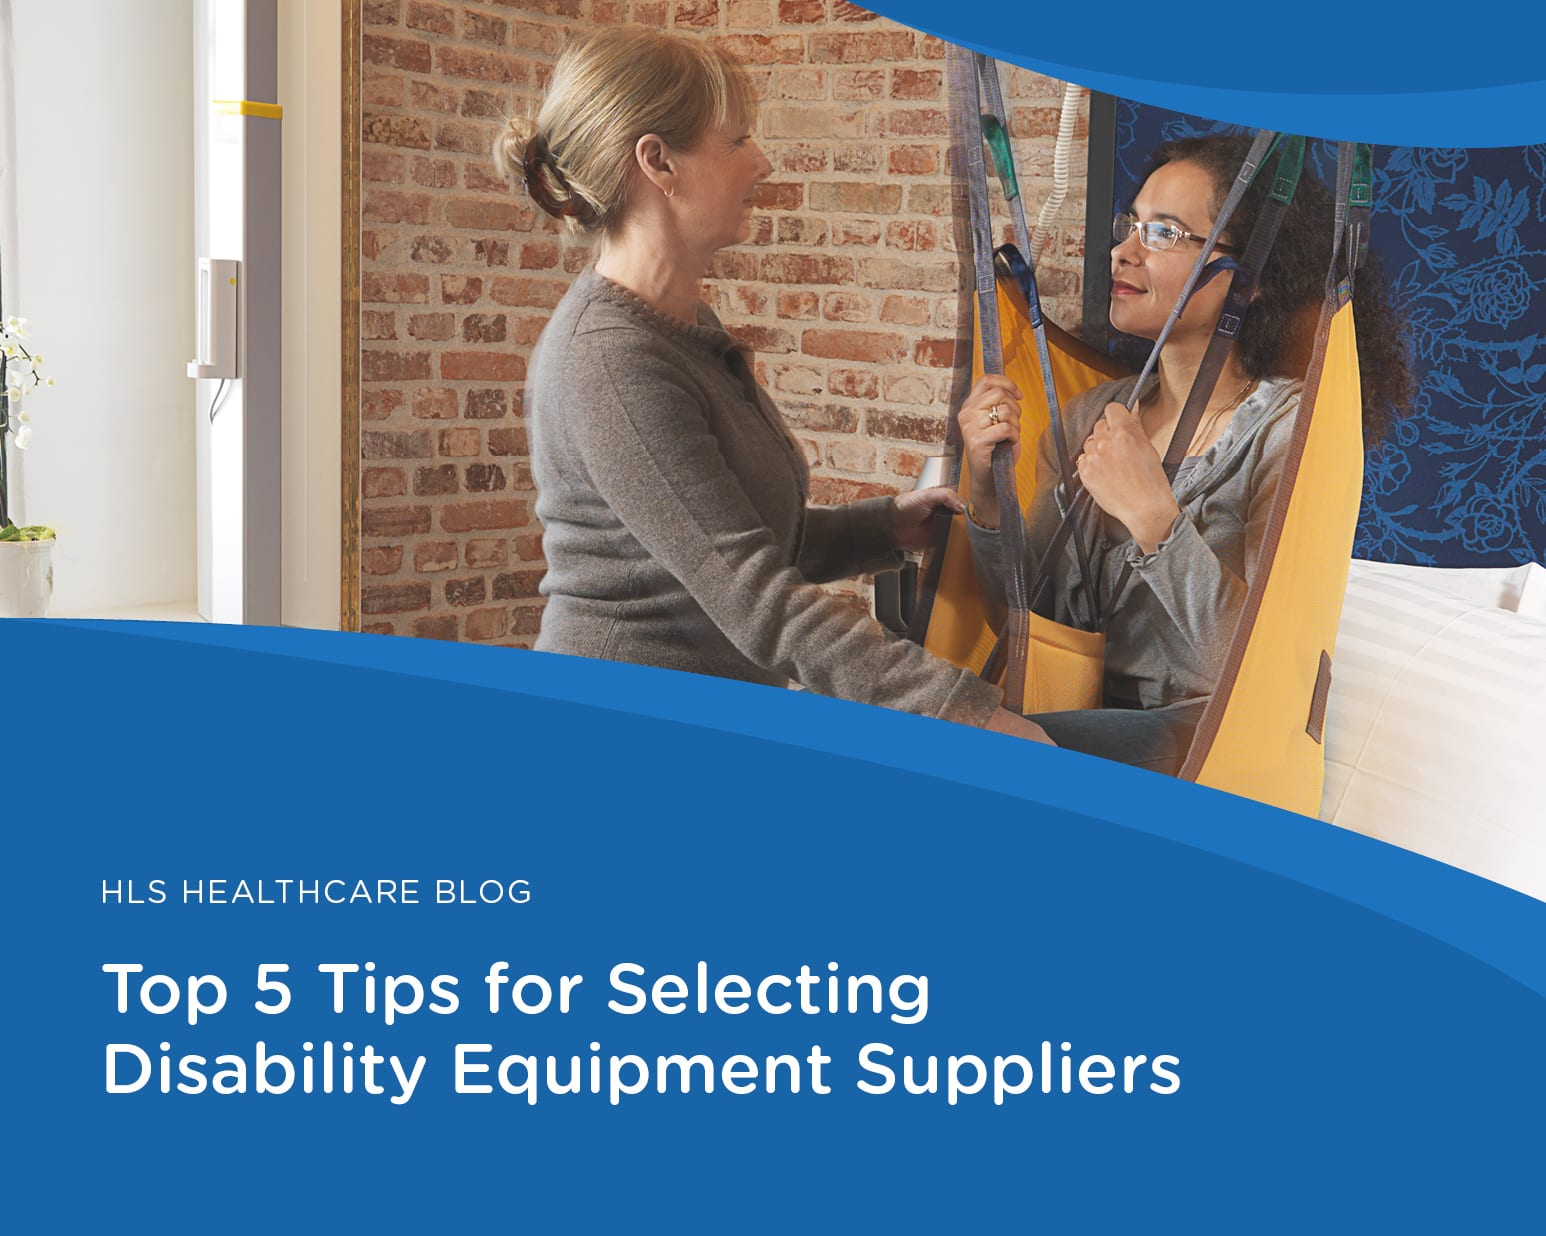 Top 5 Tips for Selecting Disability Equipment Suppliers